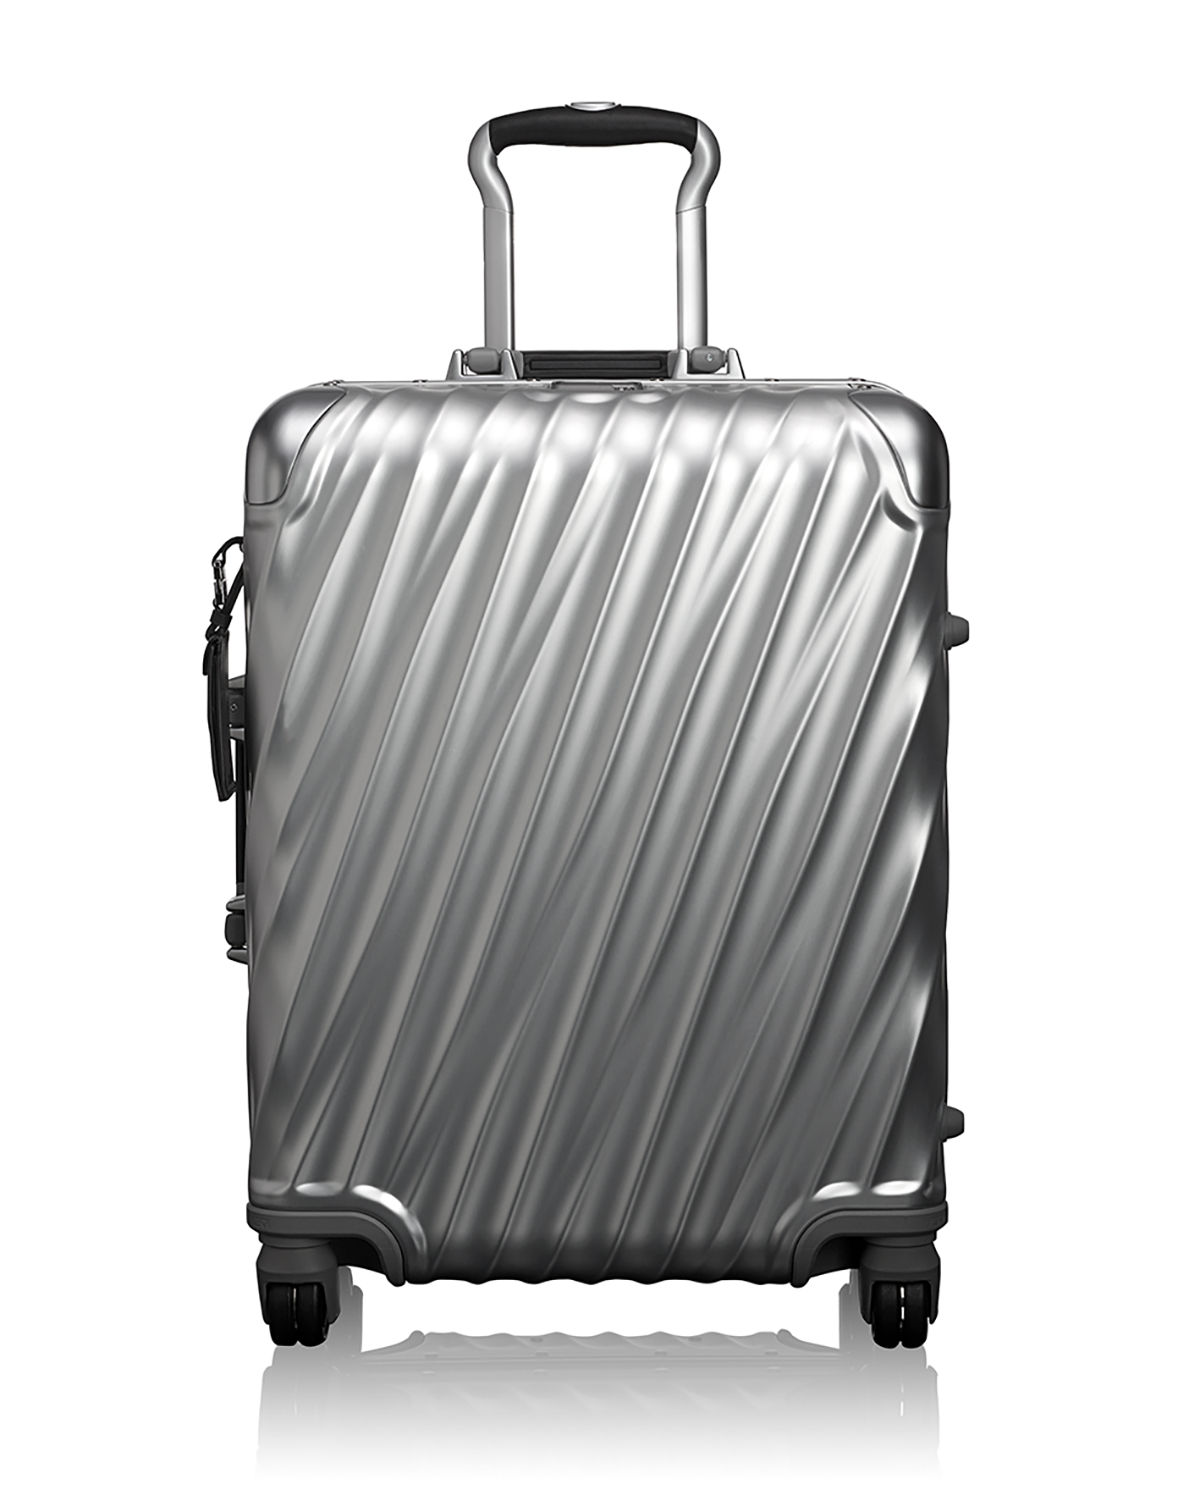 19 Degree Aluminum Continental Carry-On Luggage